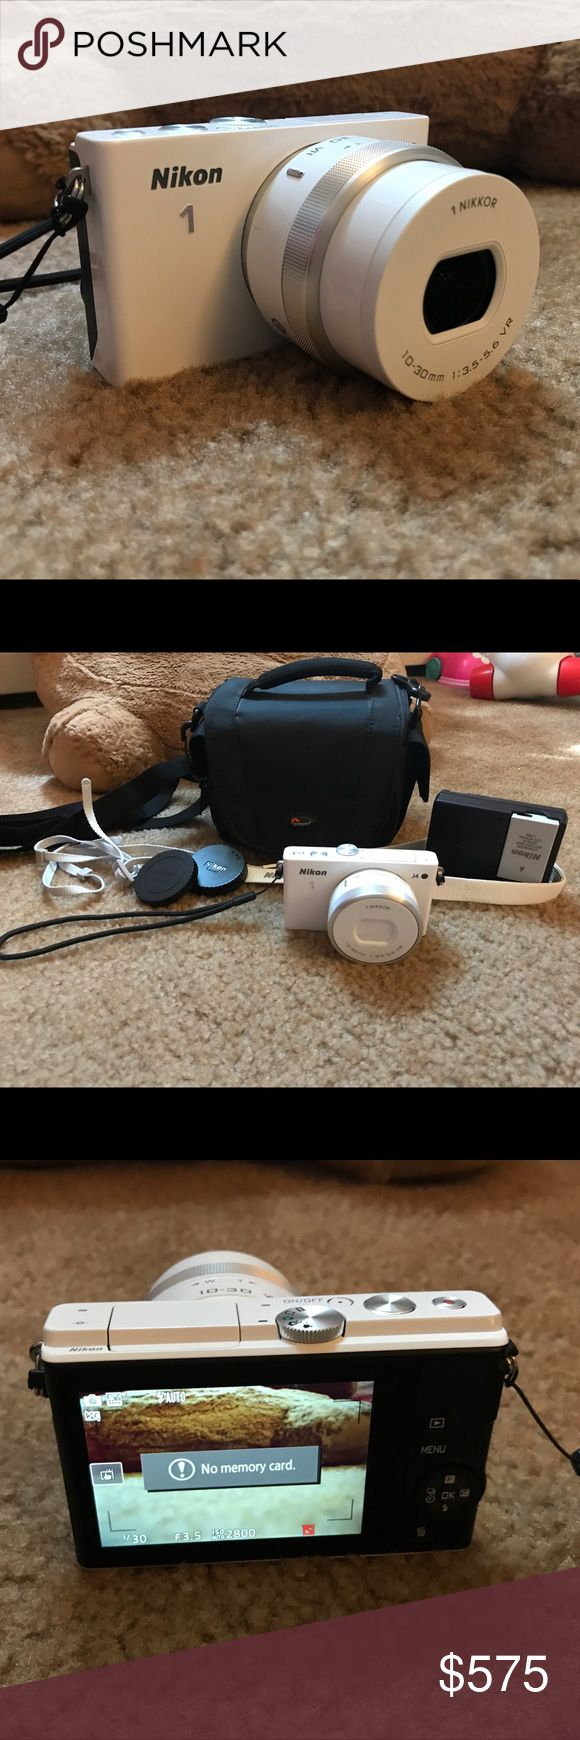 Nikon 1 J4 Digital Camera 📸 This camera was only used ONCE! It is in amazing condition! Included in this is the Nikon 1 J4 camera body, the Nikkor 10-30 mm detachable lens (you see attached to camera in photos), lens covers, recharble battery & port, the neck strap & the camera bag. You can see on Amazon the camera body with the lens is sold for $600 (shown in photo). Due to the price, I will film this being packaged to whoever purchases it for assurance. This camera needs someone who will…